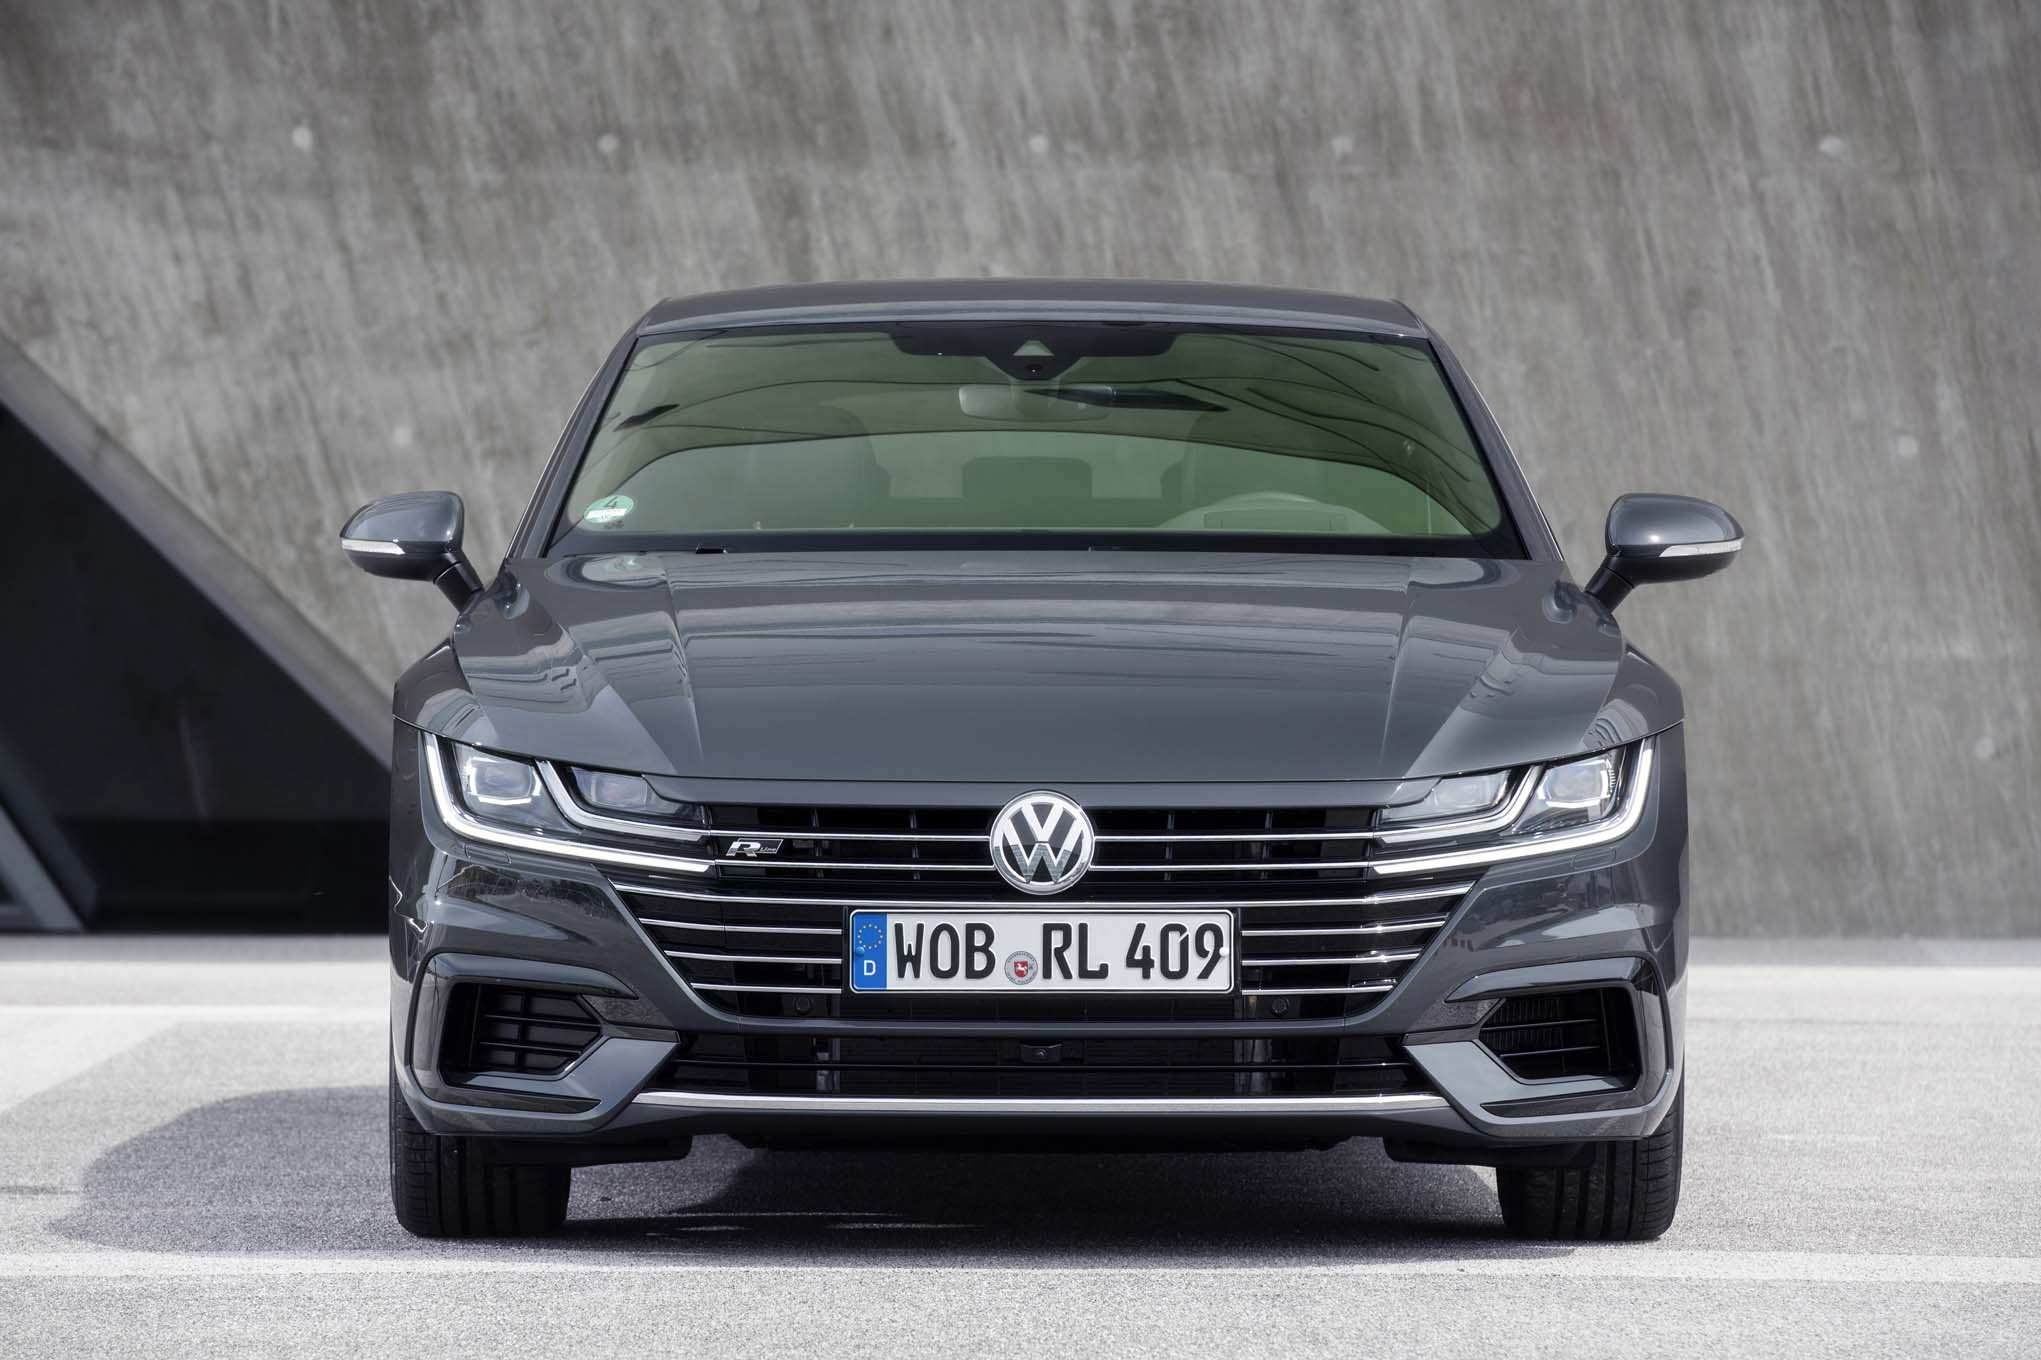 45 New 2019 Vw Cc Exterior And Interior